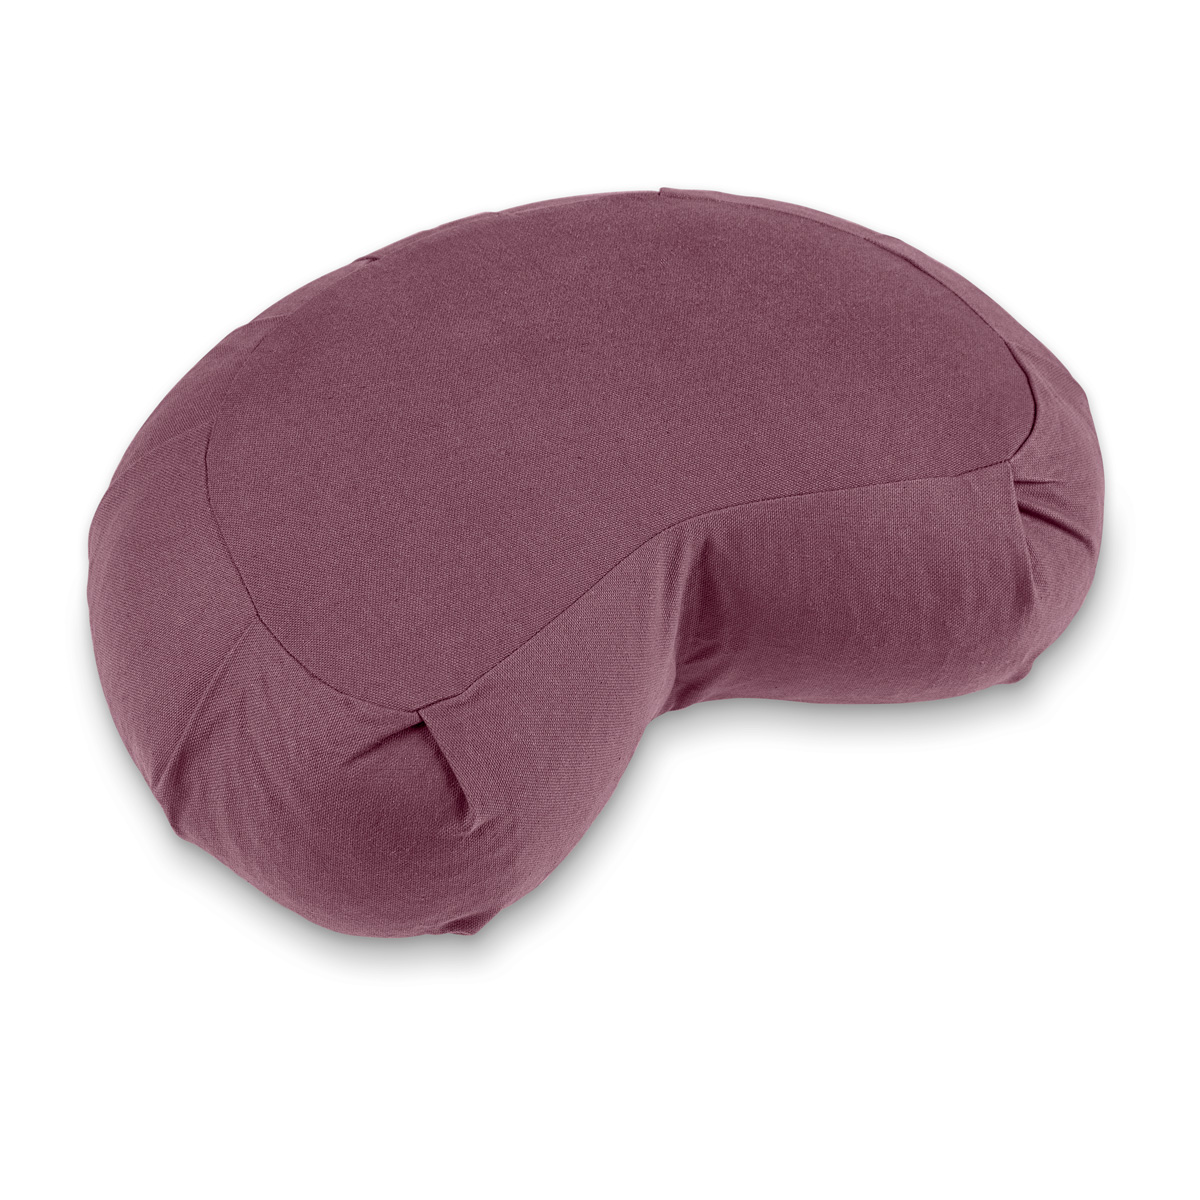 Lotuscrafts Zafu Crescent Meditation Cushion Quot Siddha